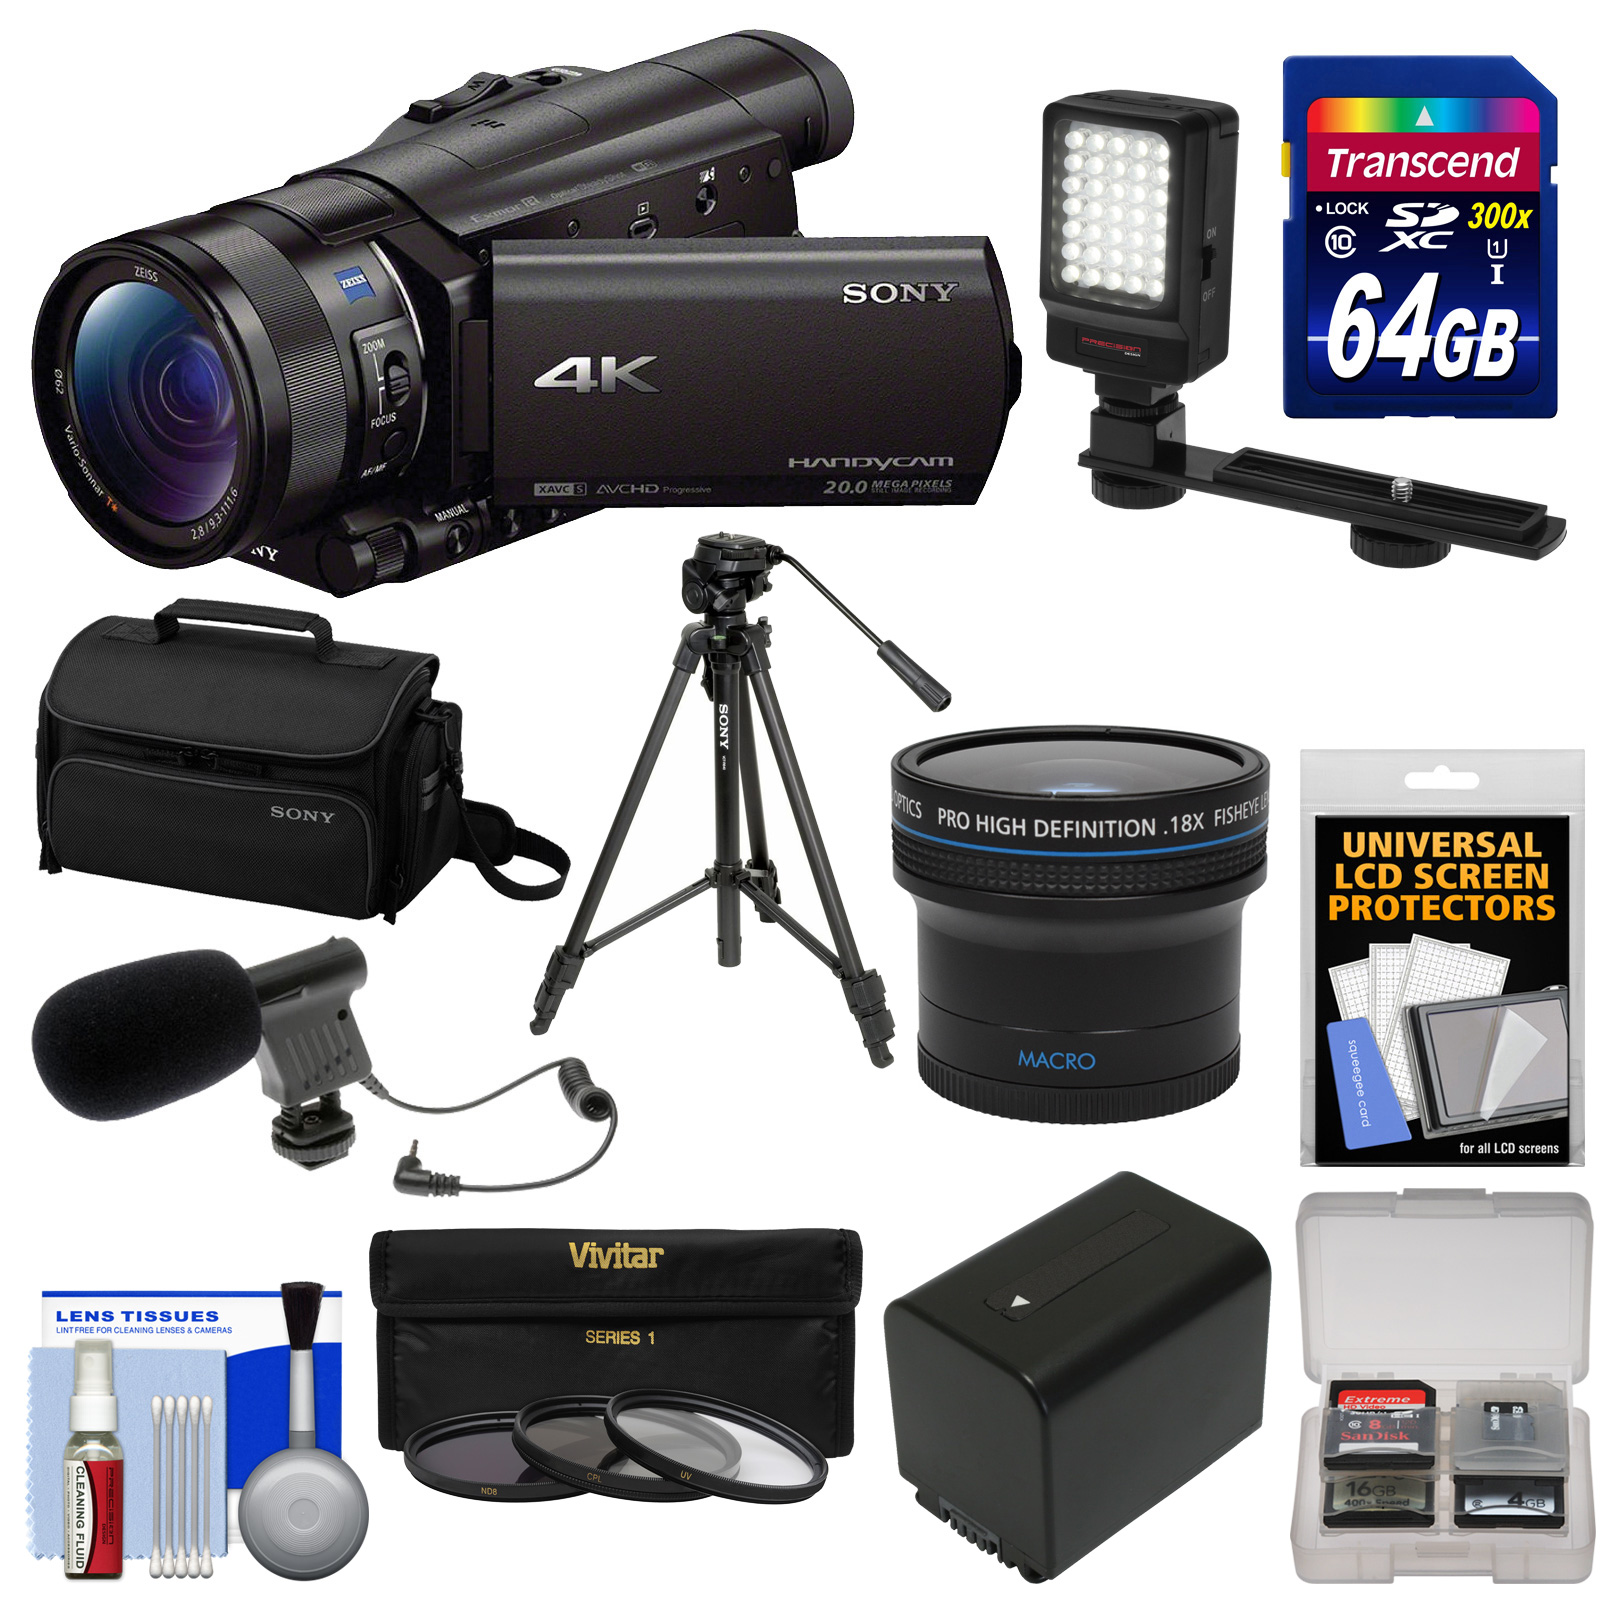 Sony Handycam FDR-AX100 Wi-Fi 4K HD Video Camera Camcorder with 64GB Card + Case + LED Light + Battery + Mic +... by Sony